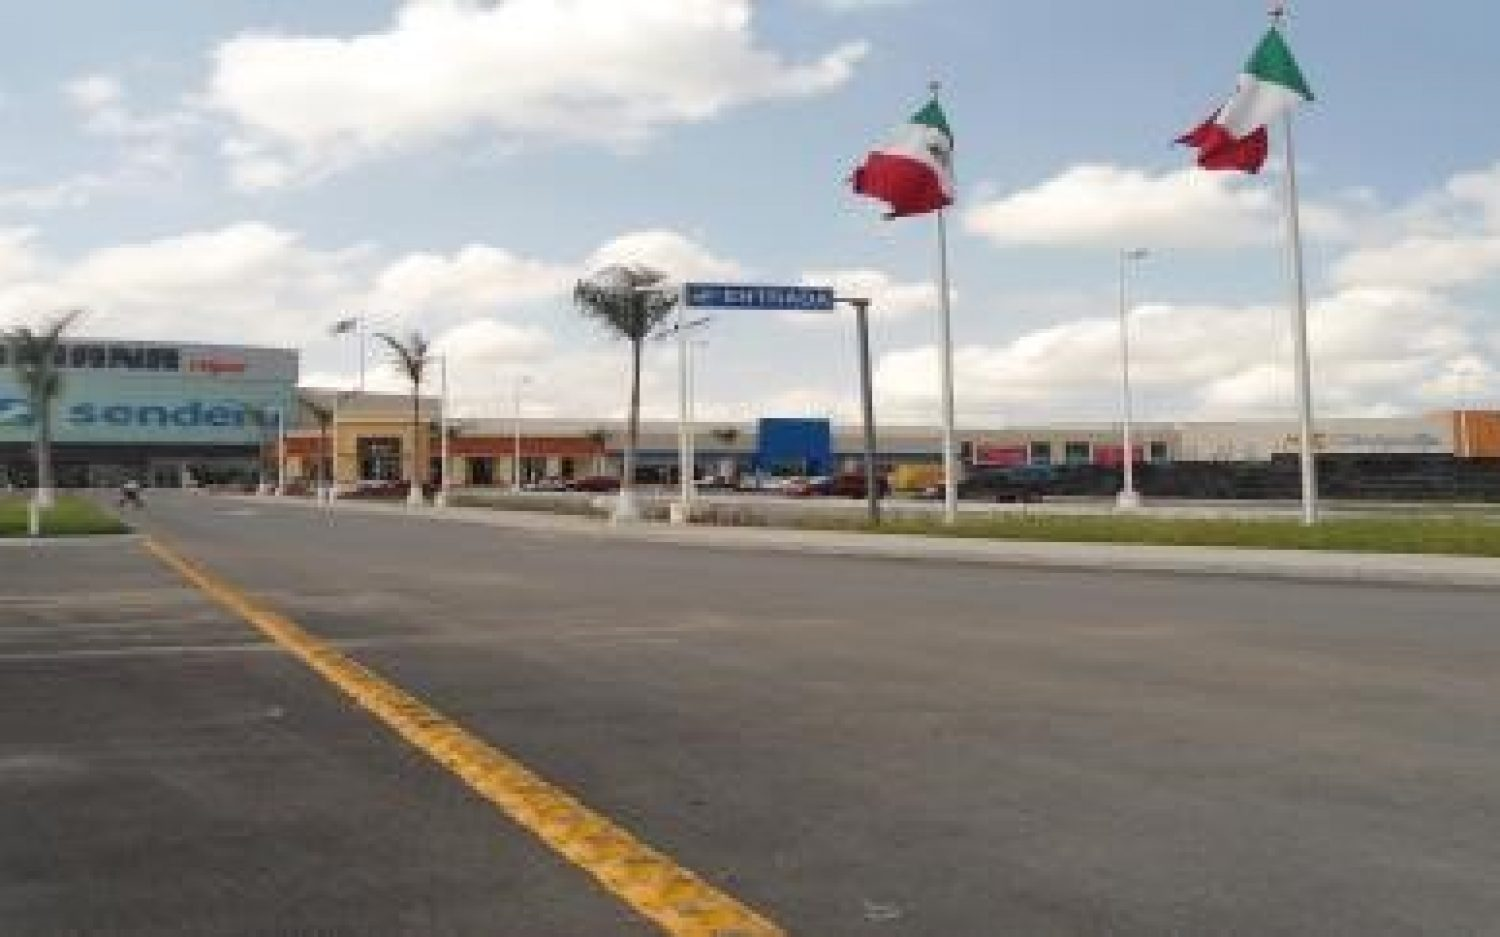 Co-Plaza Sendero Villahermosa (2)